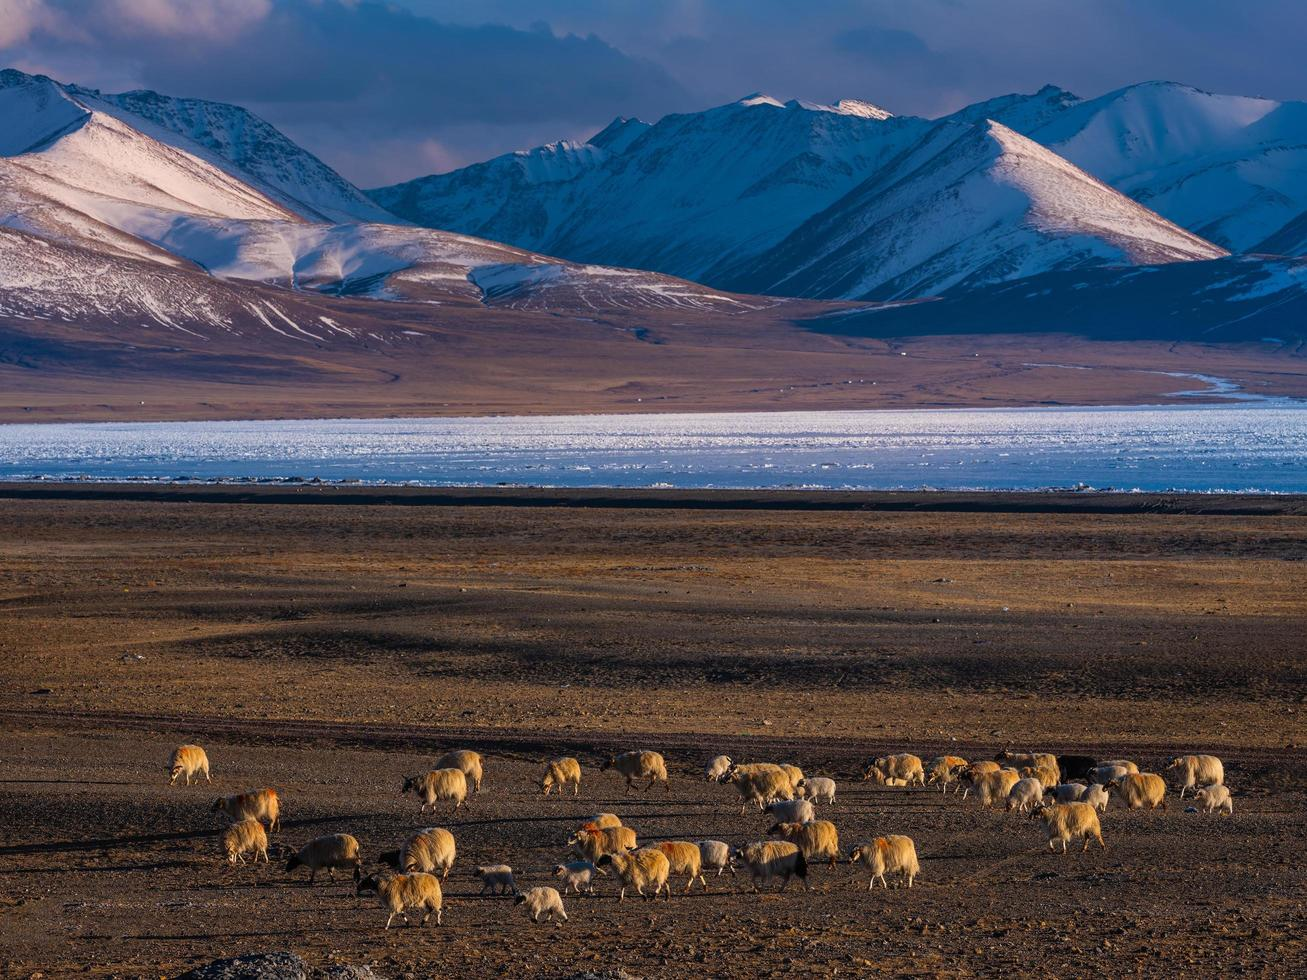 Sheep in field with mountains in background  photo